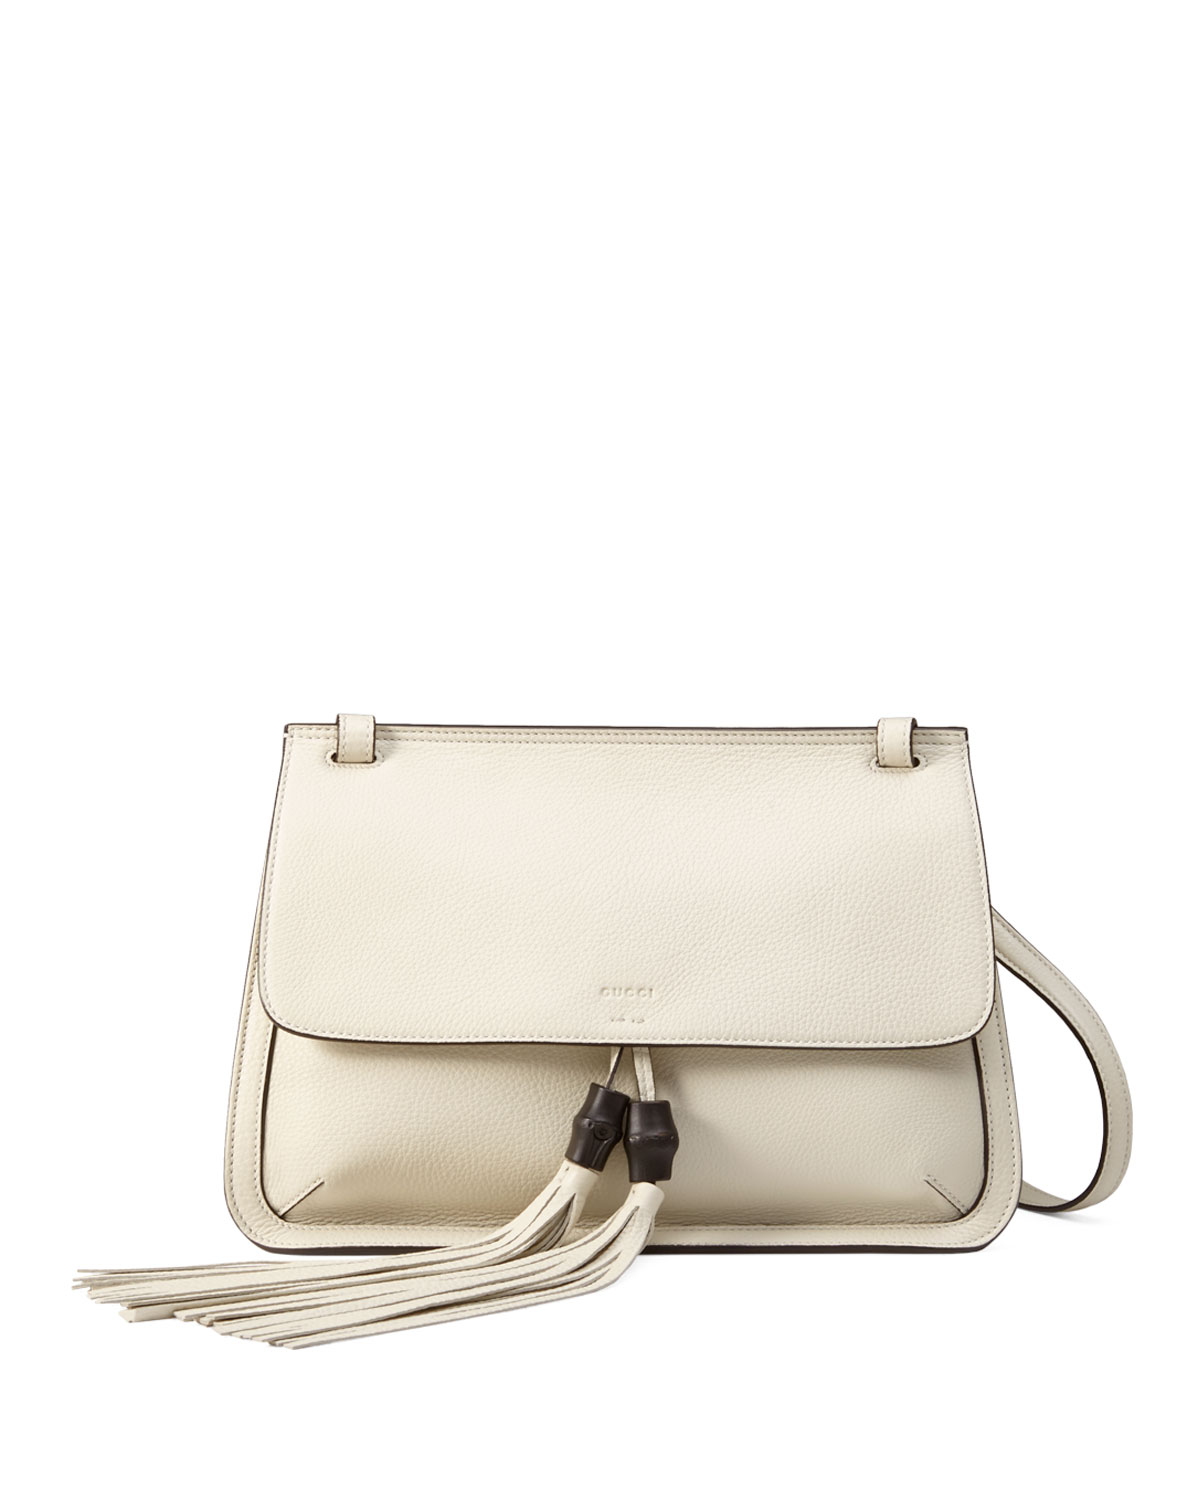 Bamboo Daily Leather Flap Shoulder Bag, White